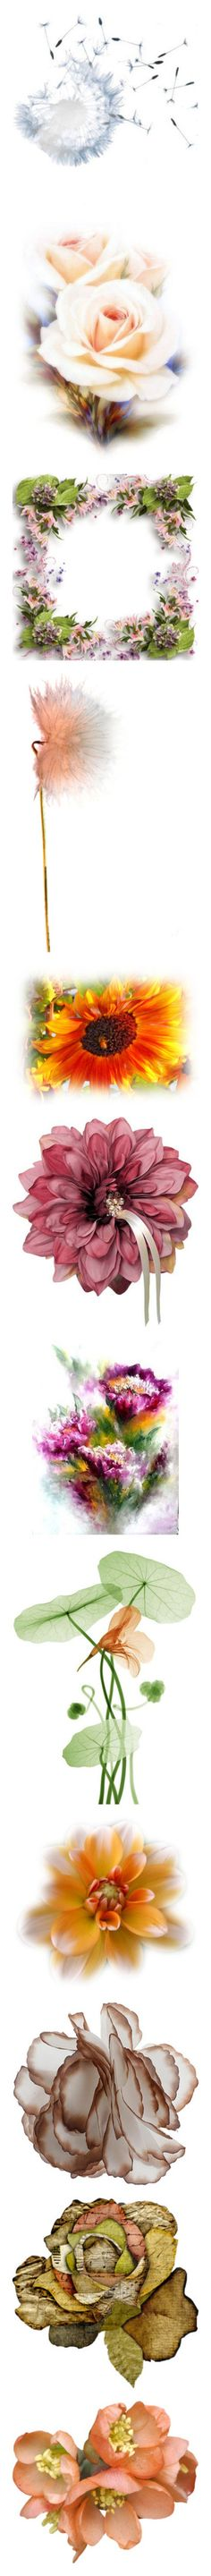 """""""FLOWERS - Anything Goes"""" by for-the-art-of-fashion ❤ liked on Polyvore featuring effects, flowers, backgrounds, filler, roses, tubes, frames, borders, picture frame and dandelion"""